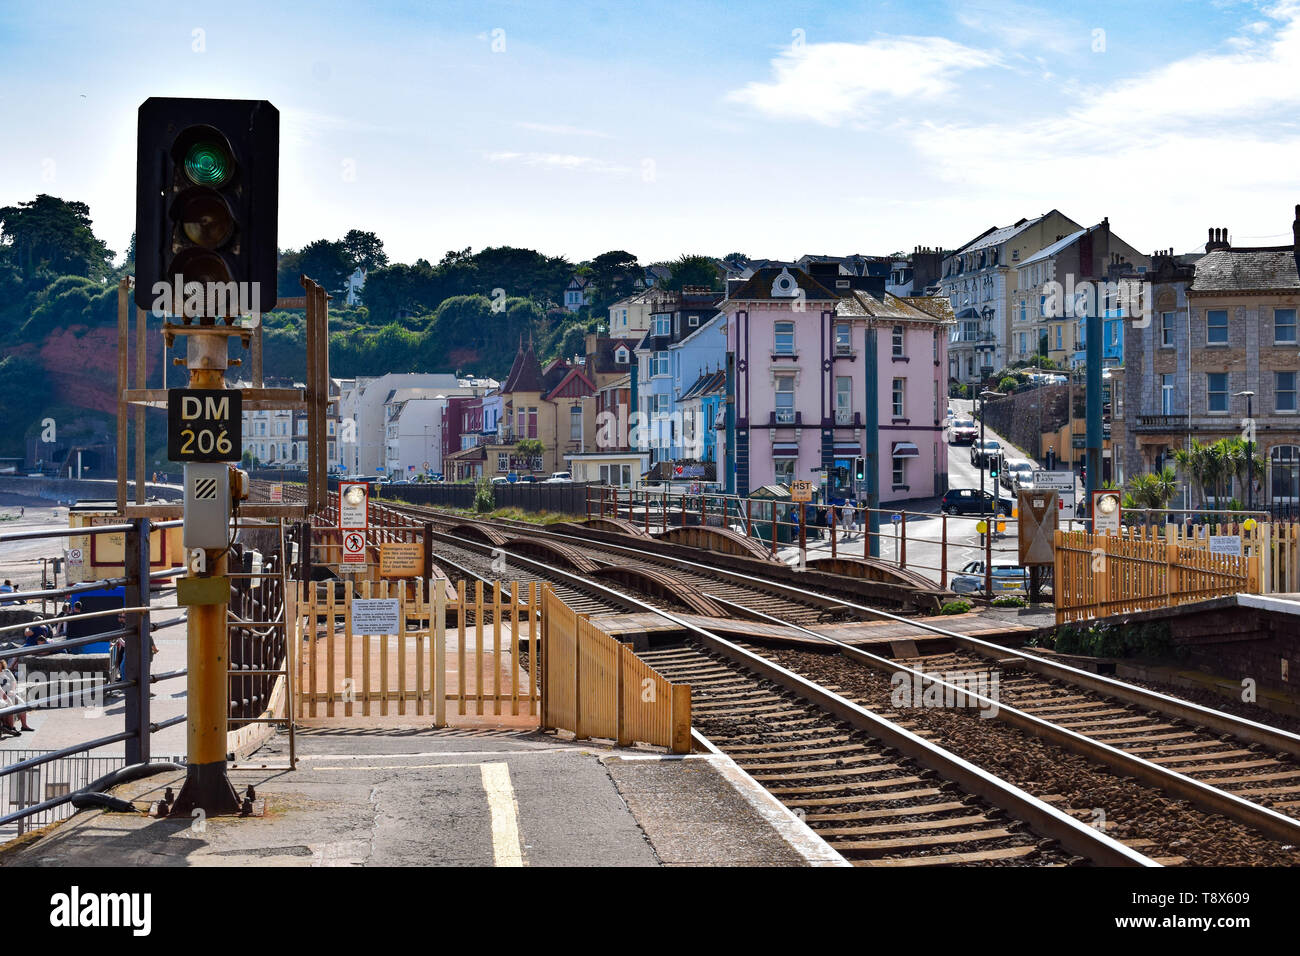 Looking west at Dawlish train station. - Stock Image